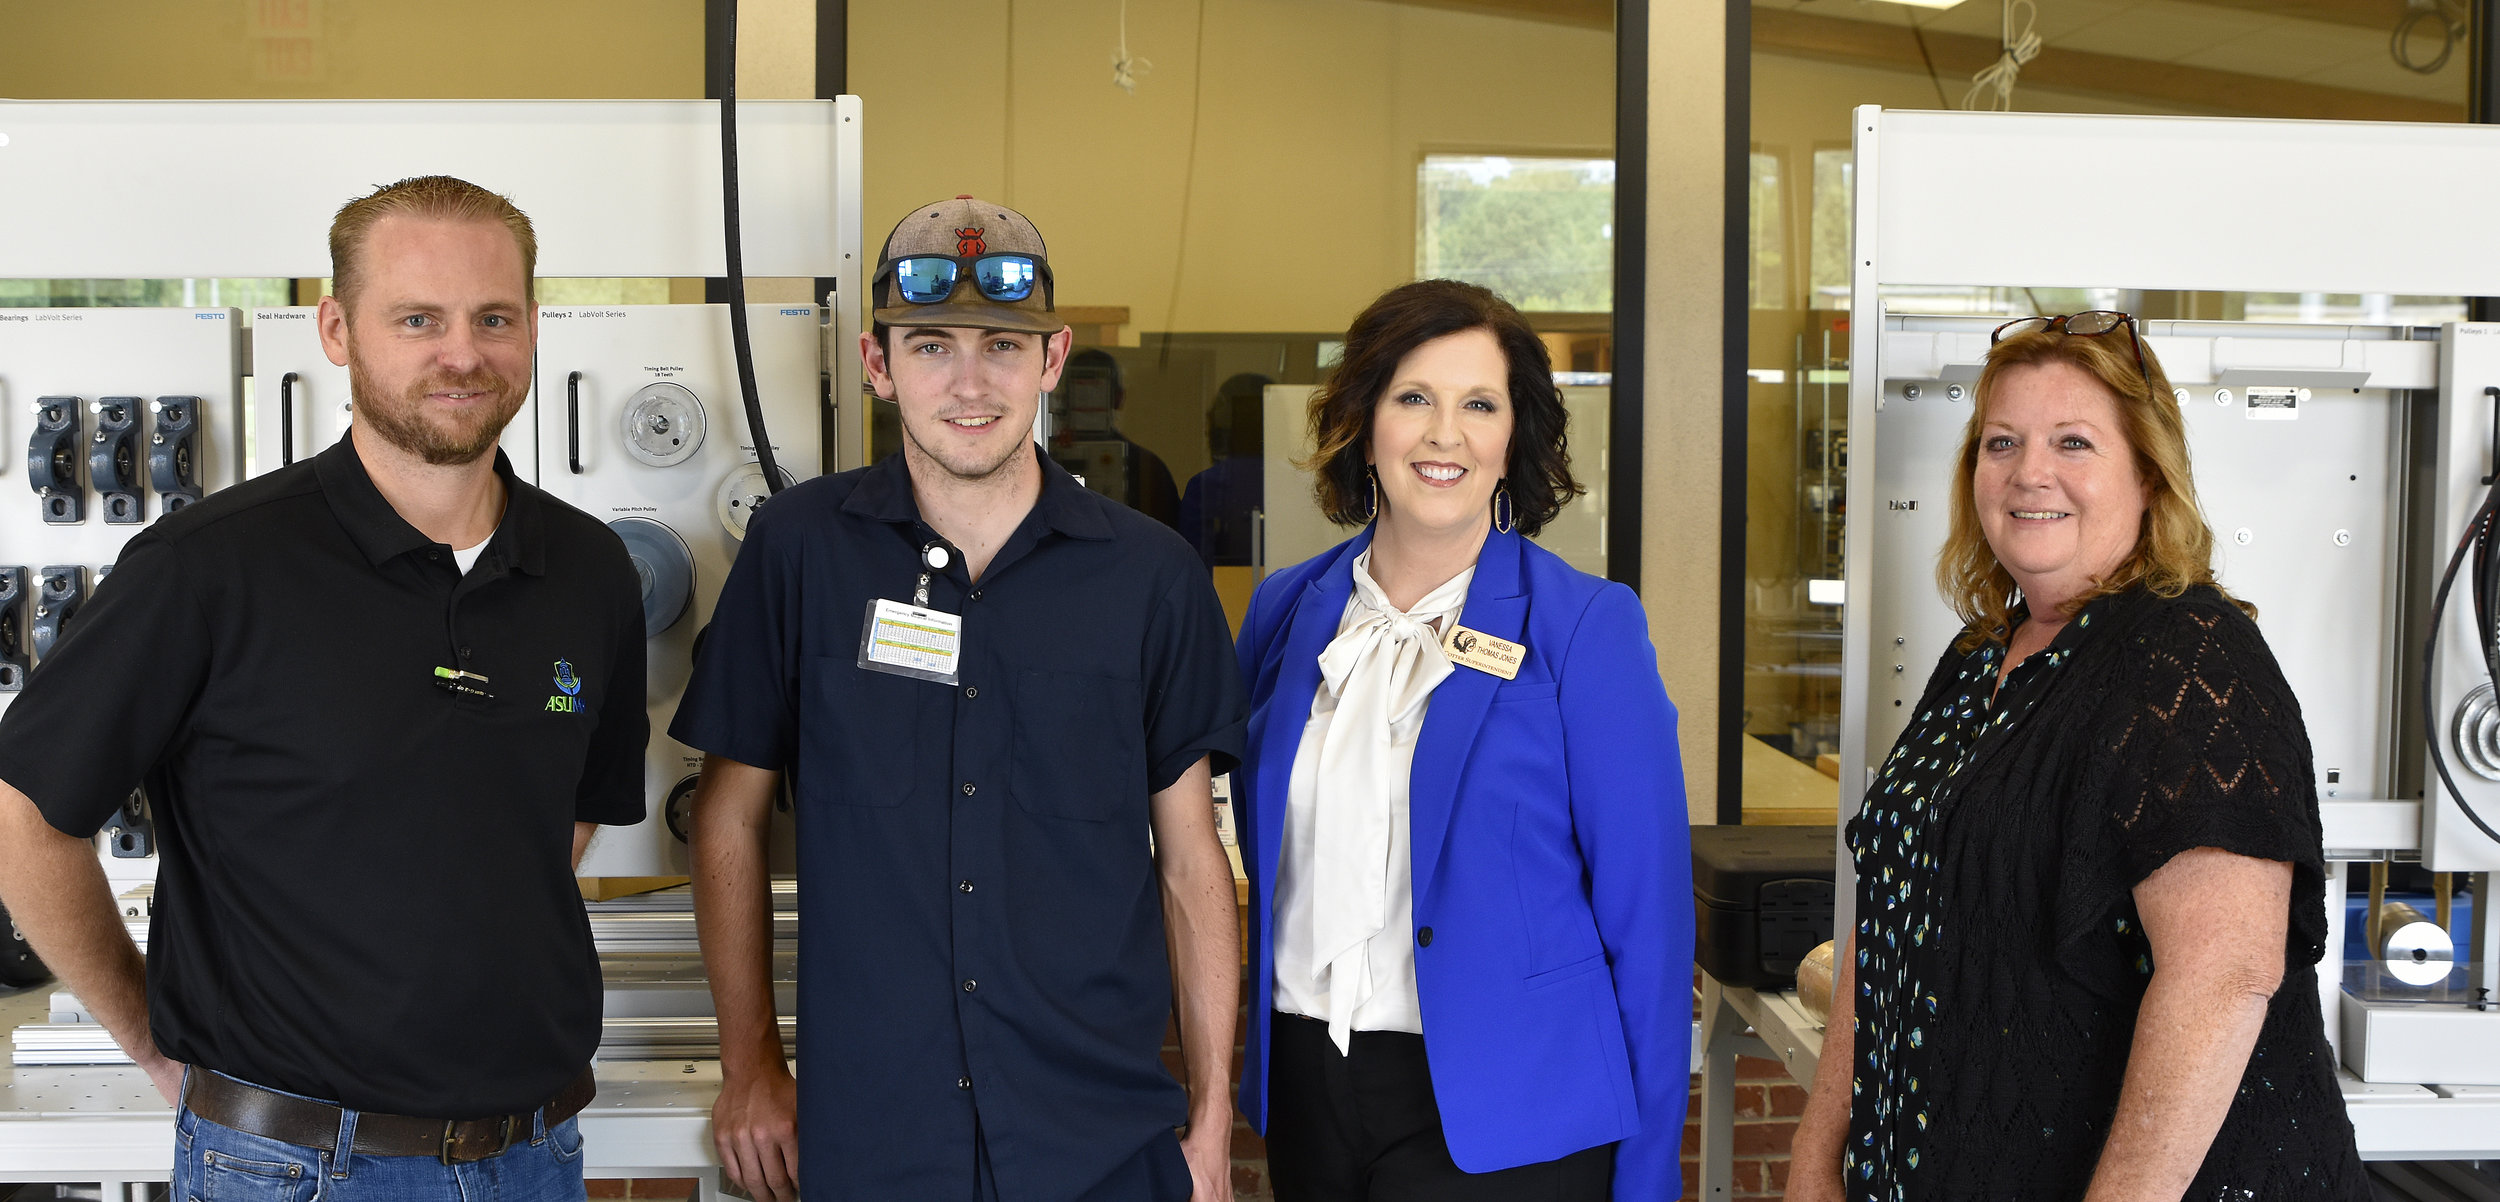 Pictured from left are Nathan Lueck, director of the ASUMH Secondary Tech Center; Jesse Hutchinson; Vanessa Thomas Jones, Cotter Superintendent; and Janel Cotter, director of workforce development for ASUMH.